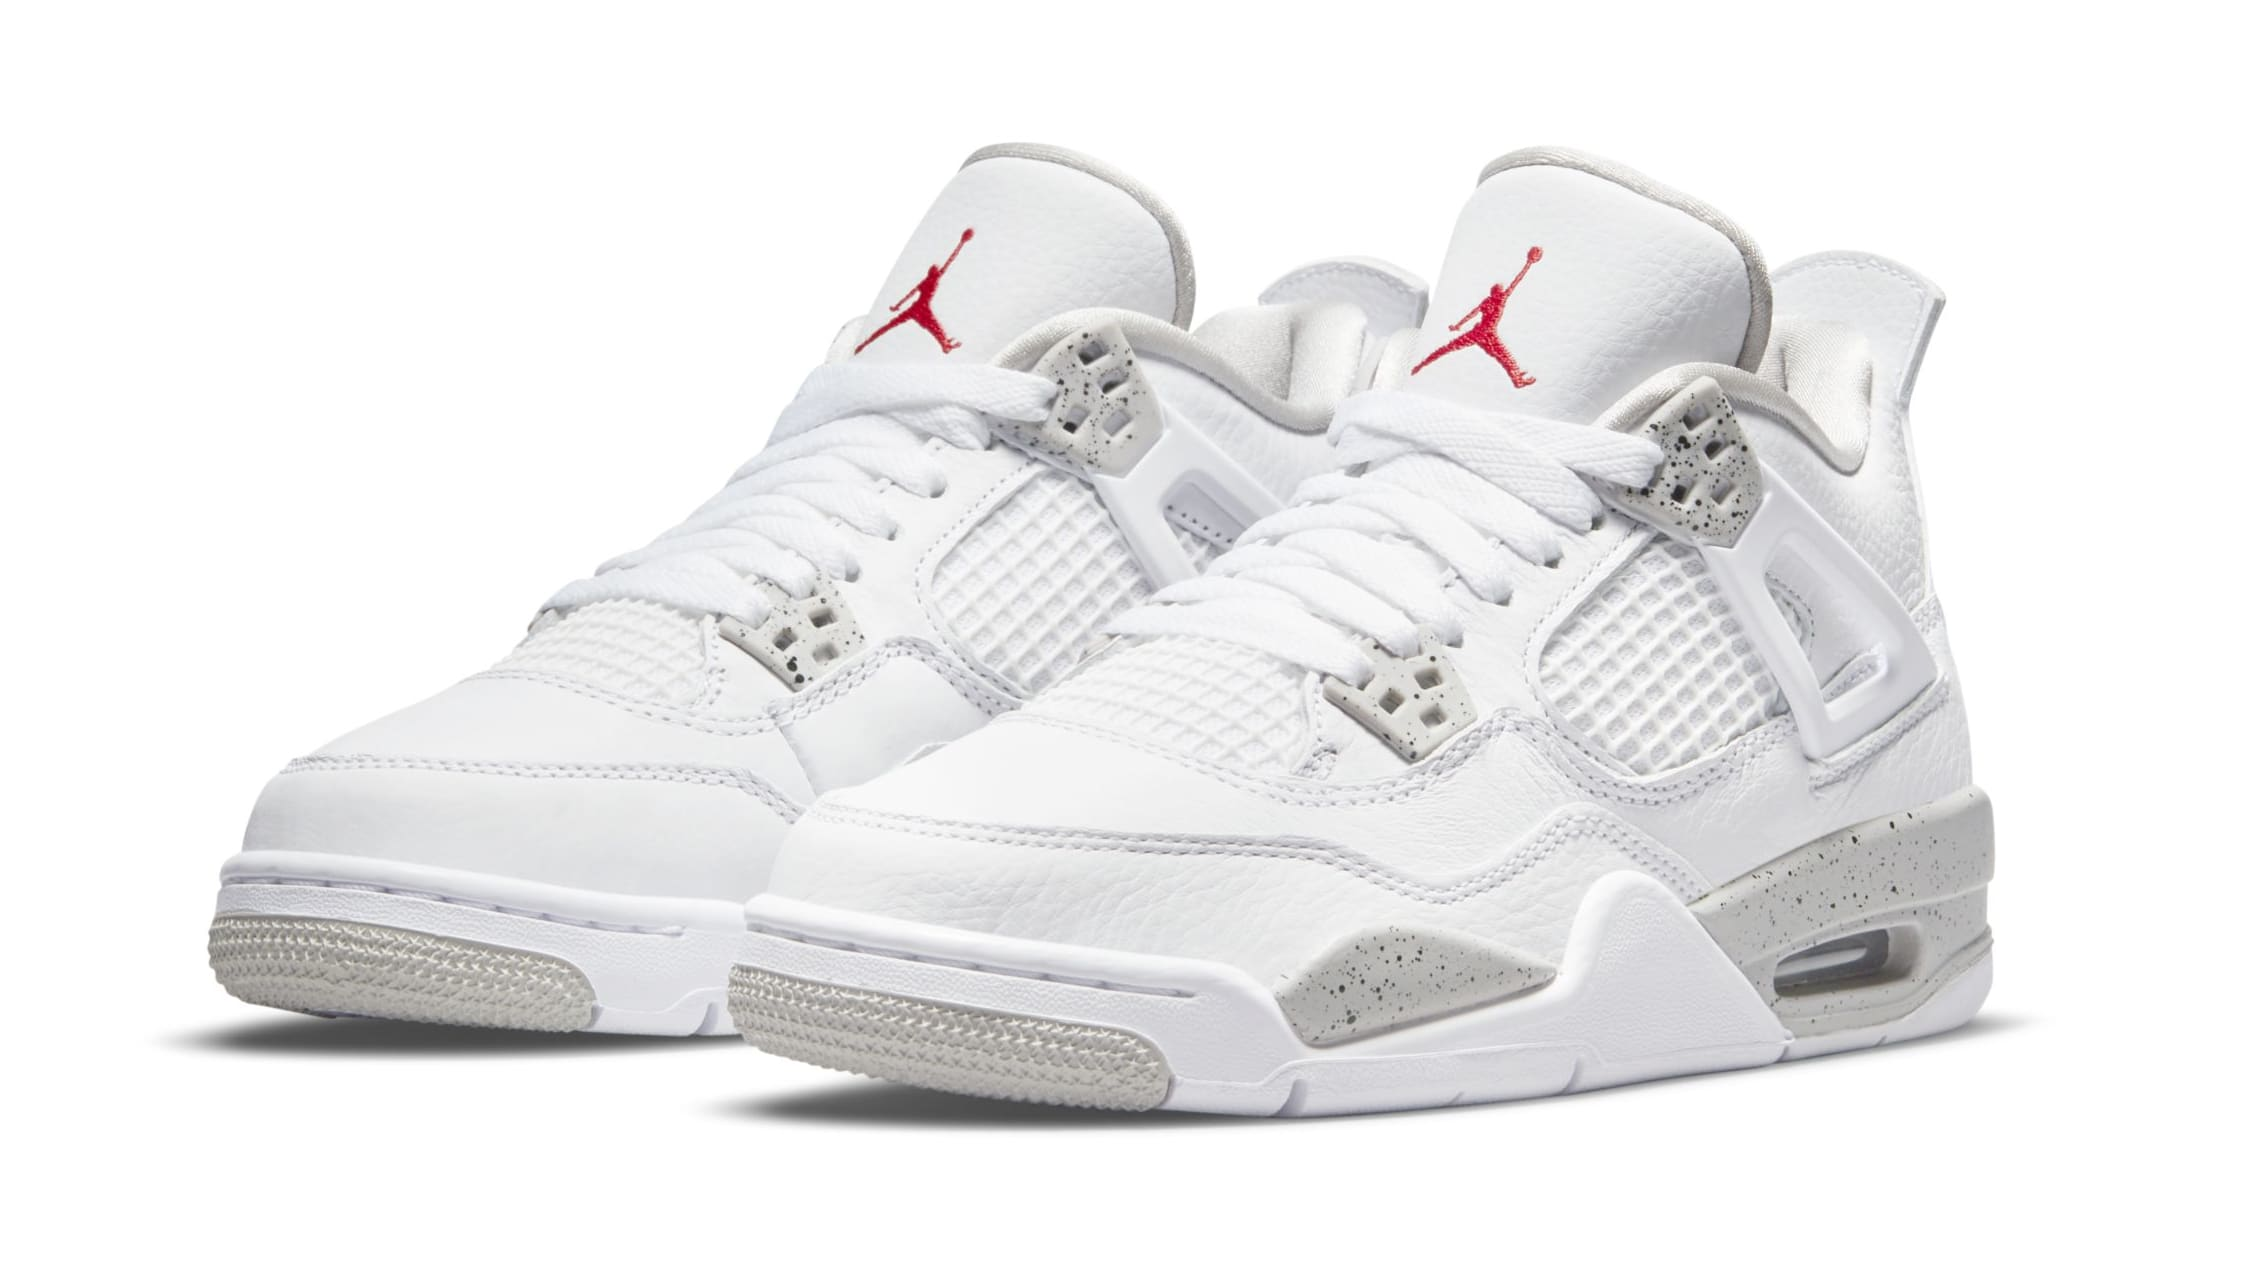 Air Jordan 4 White/Tech Grey/Black/Fire Red CT8527-100 Pair